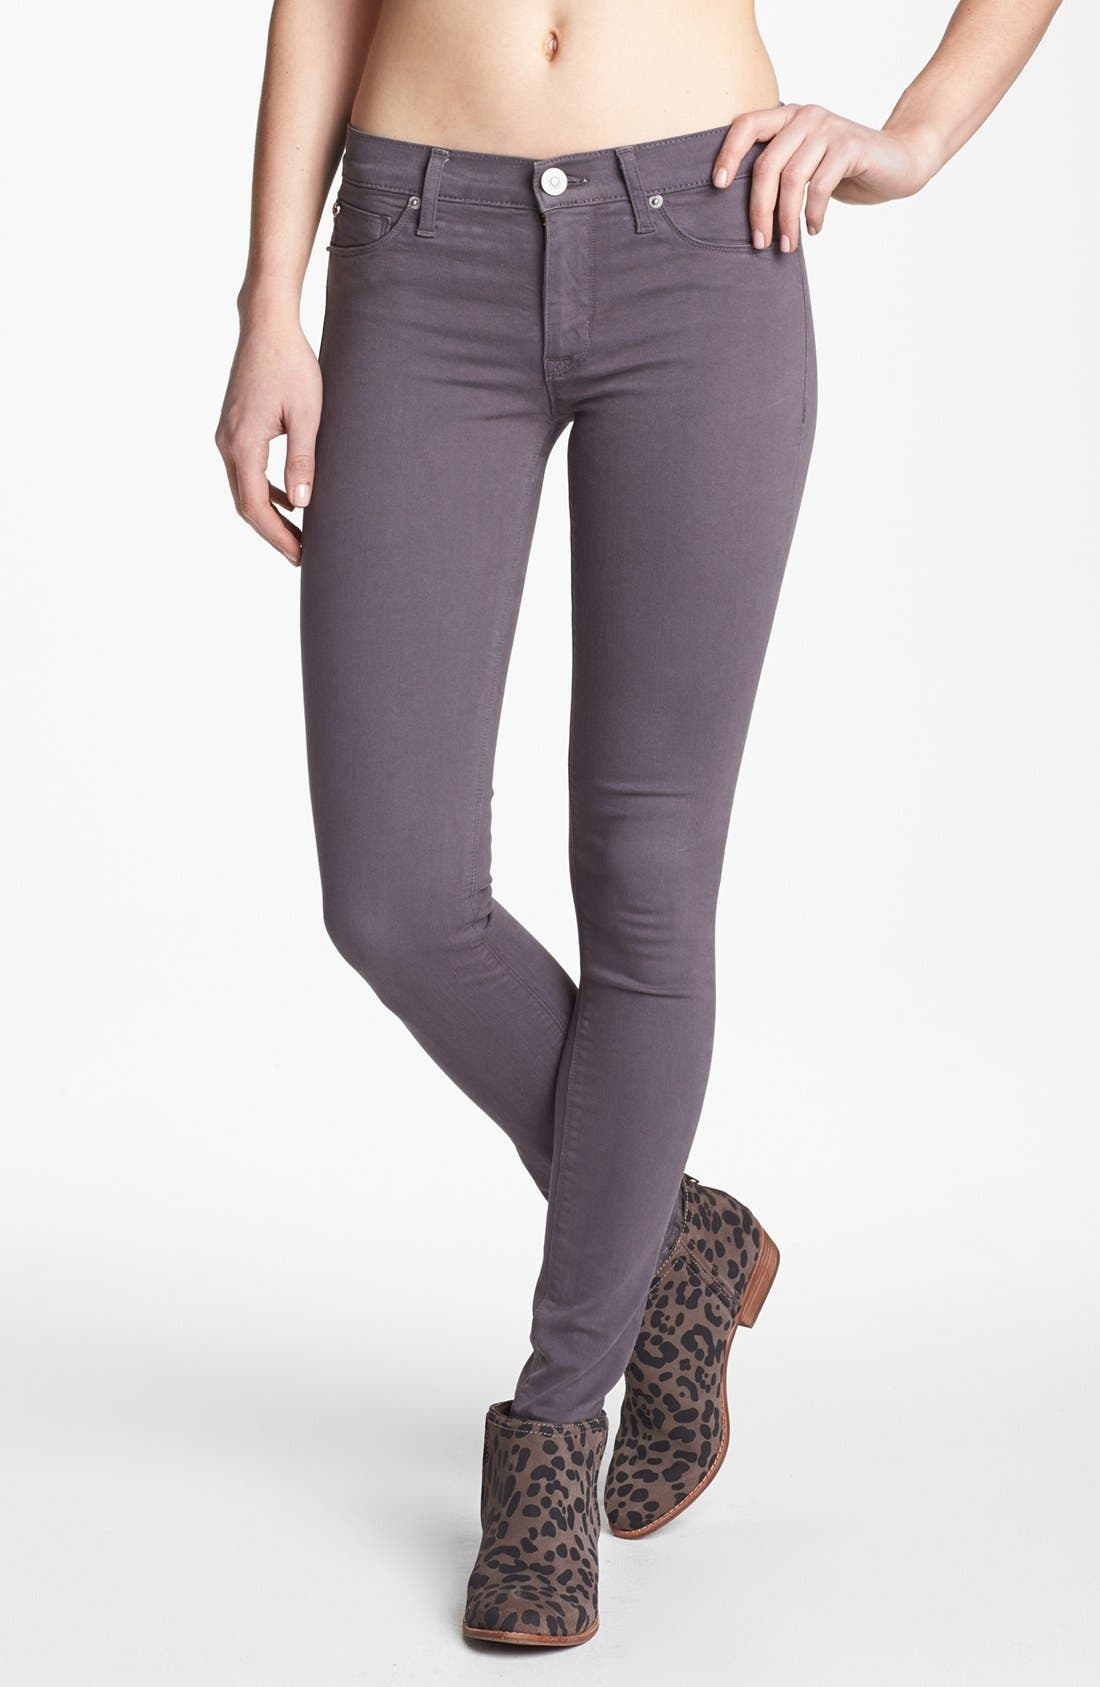 Alternate Image 1 Selected - Hudson Jeans 'Colette' Mid Rise Skinny Jeans (Steel Grey)